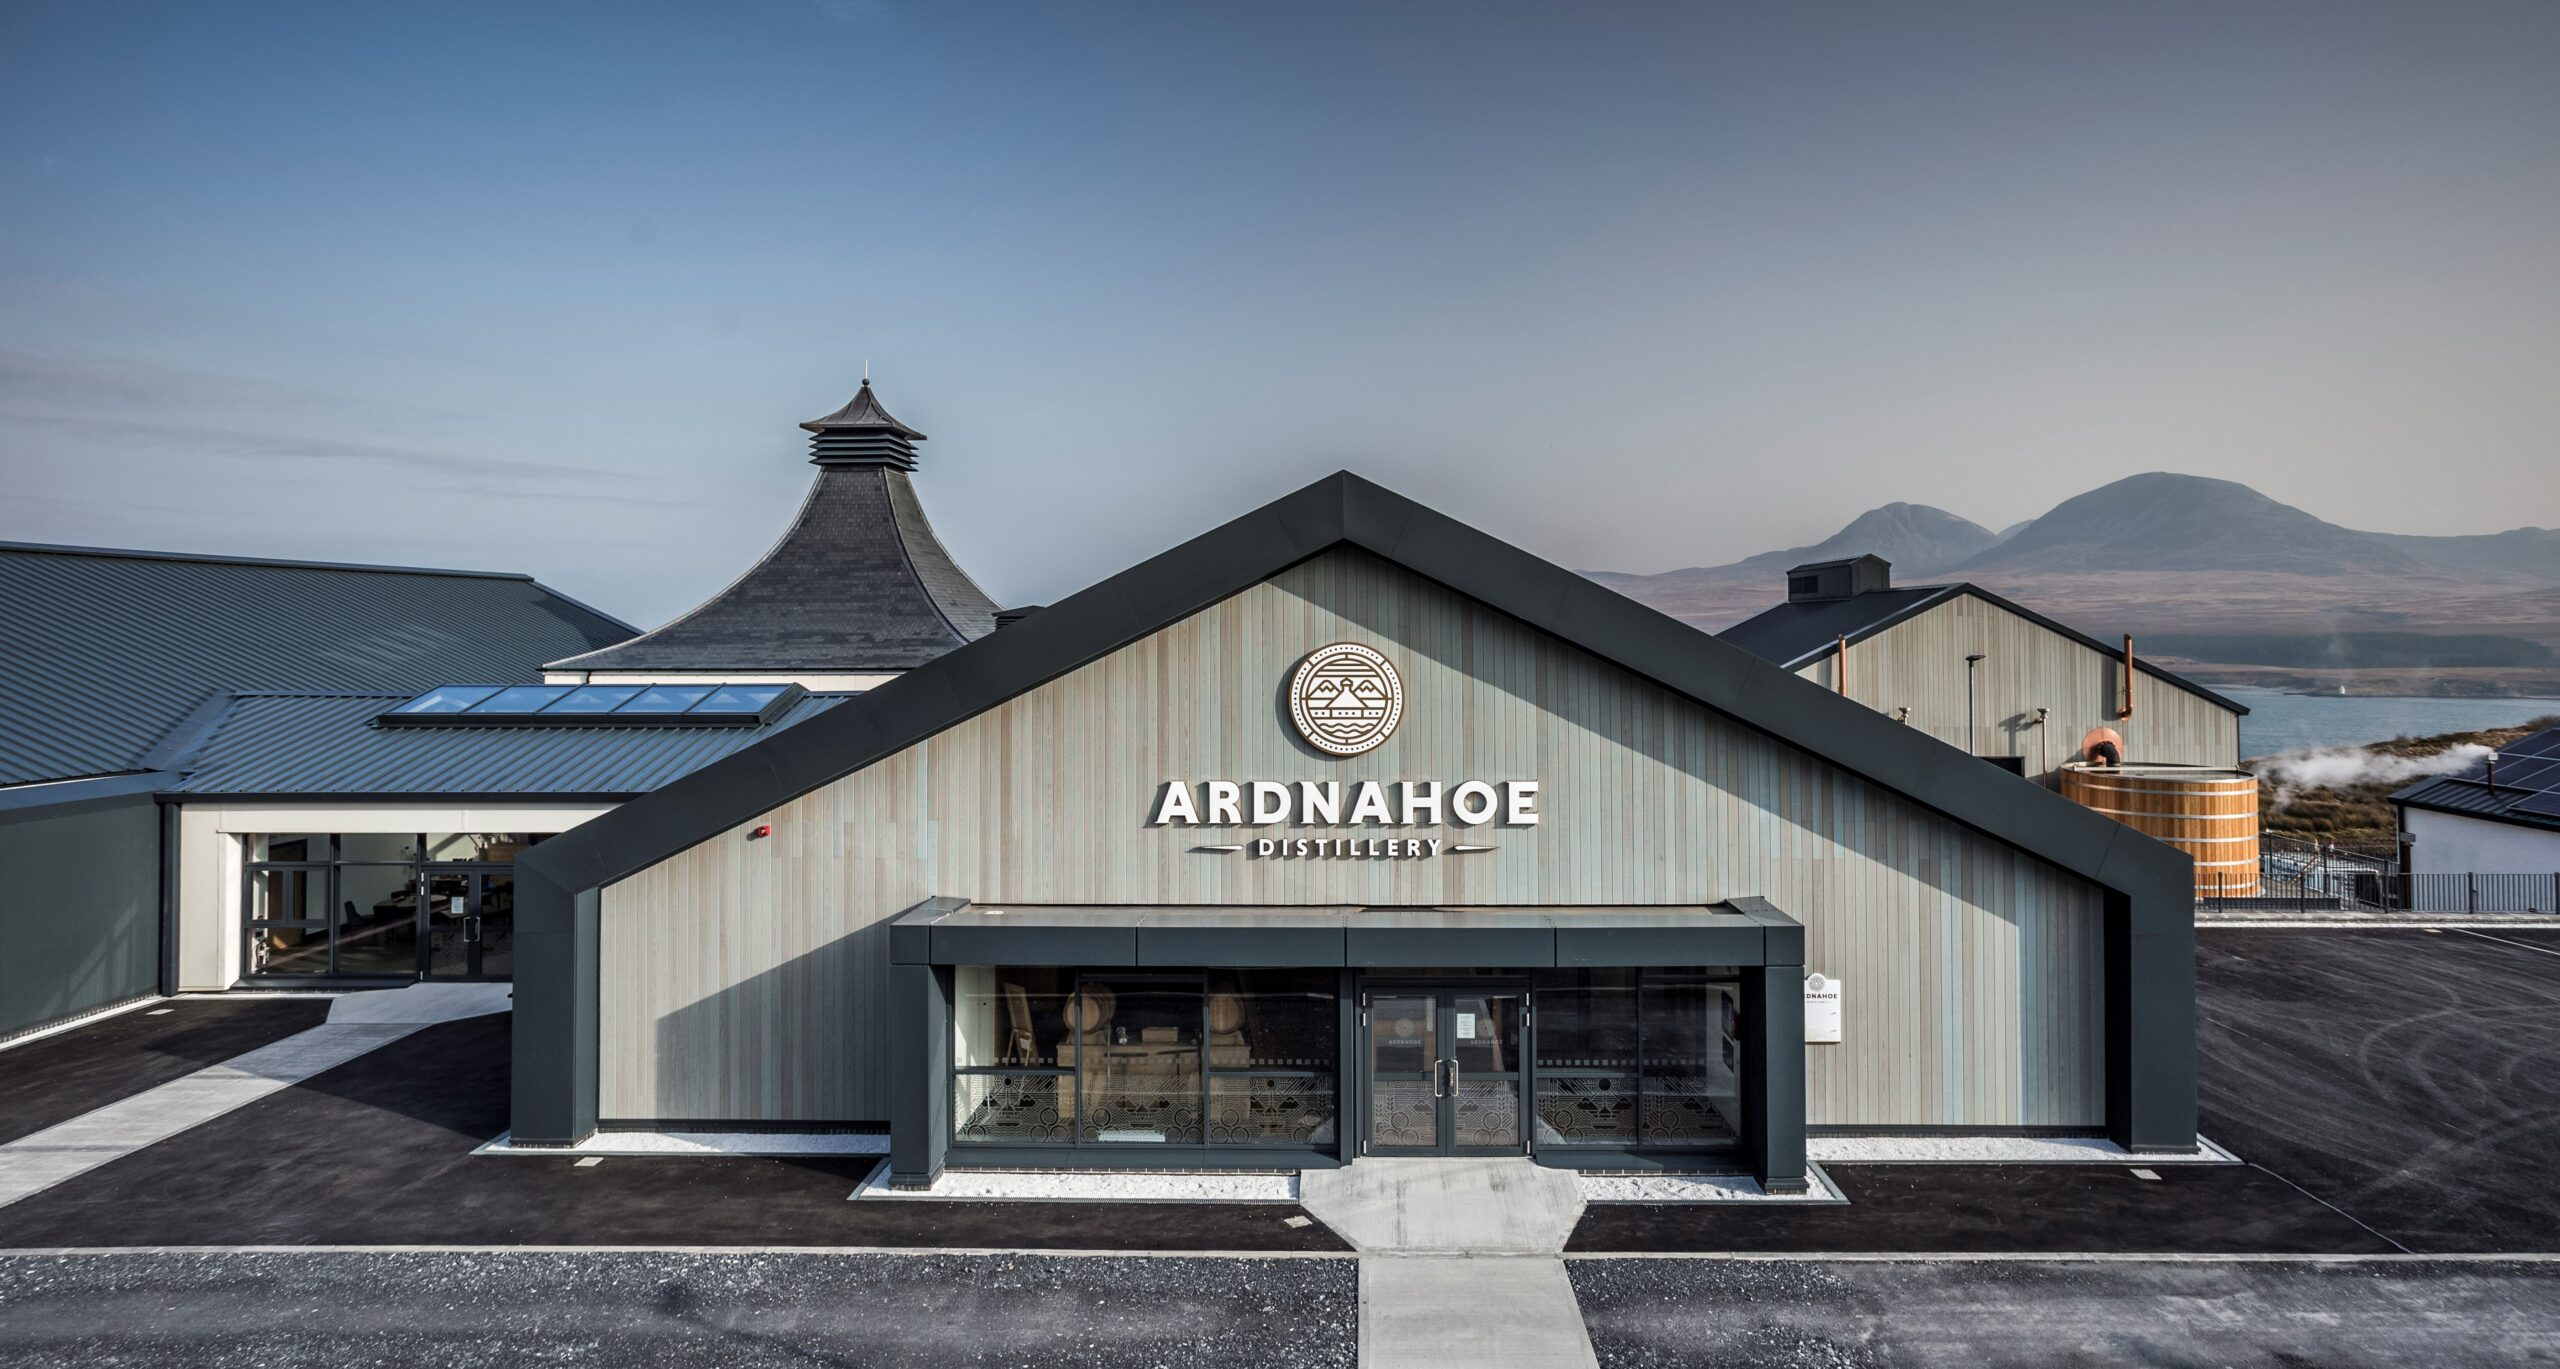 Image showing Ardnahoe Distillery